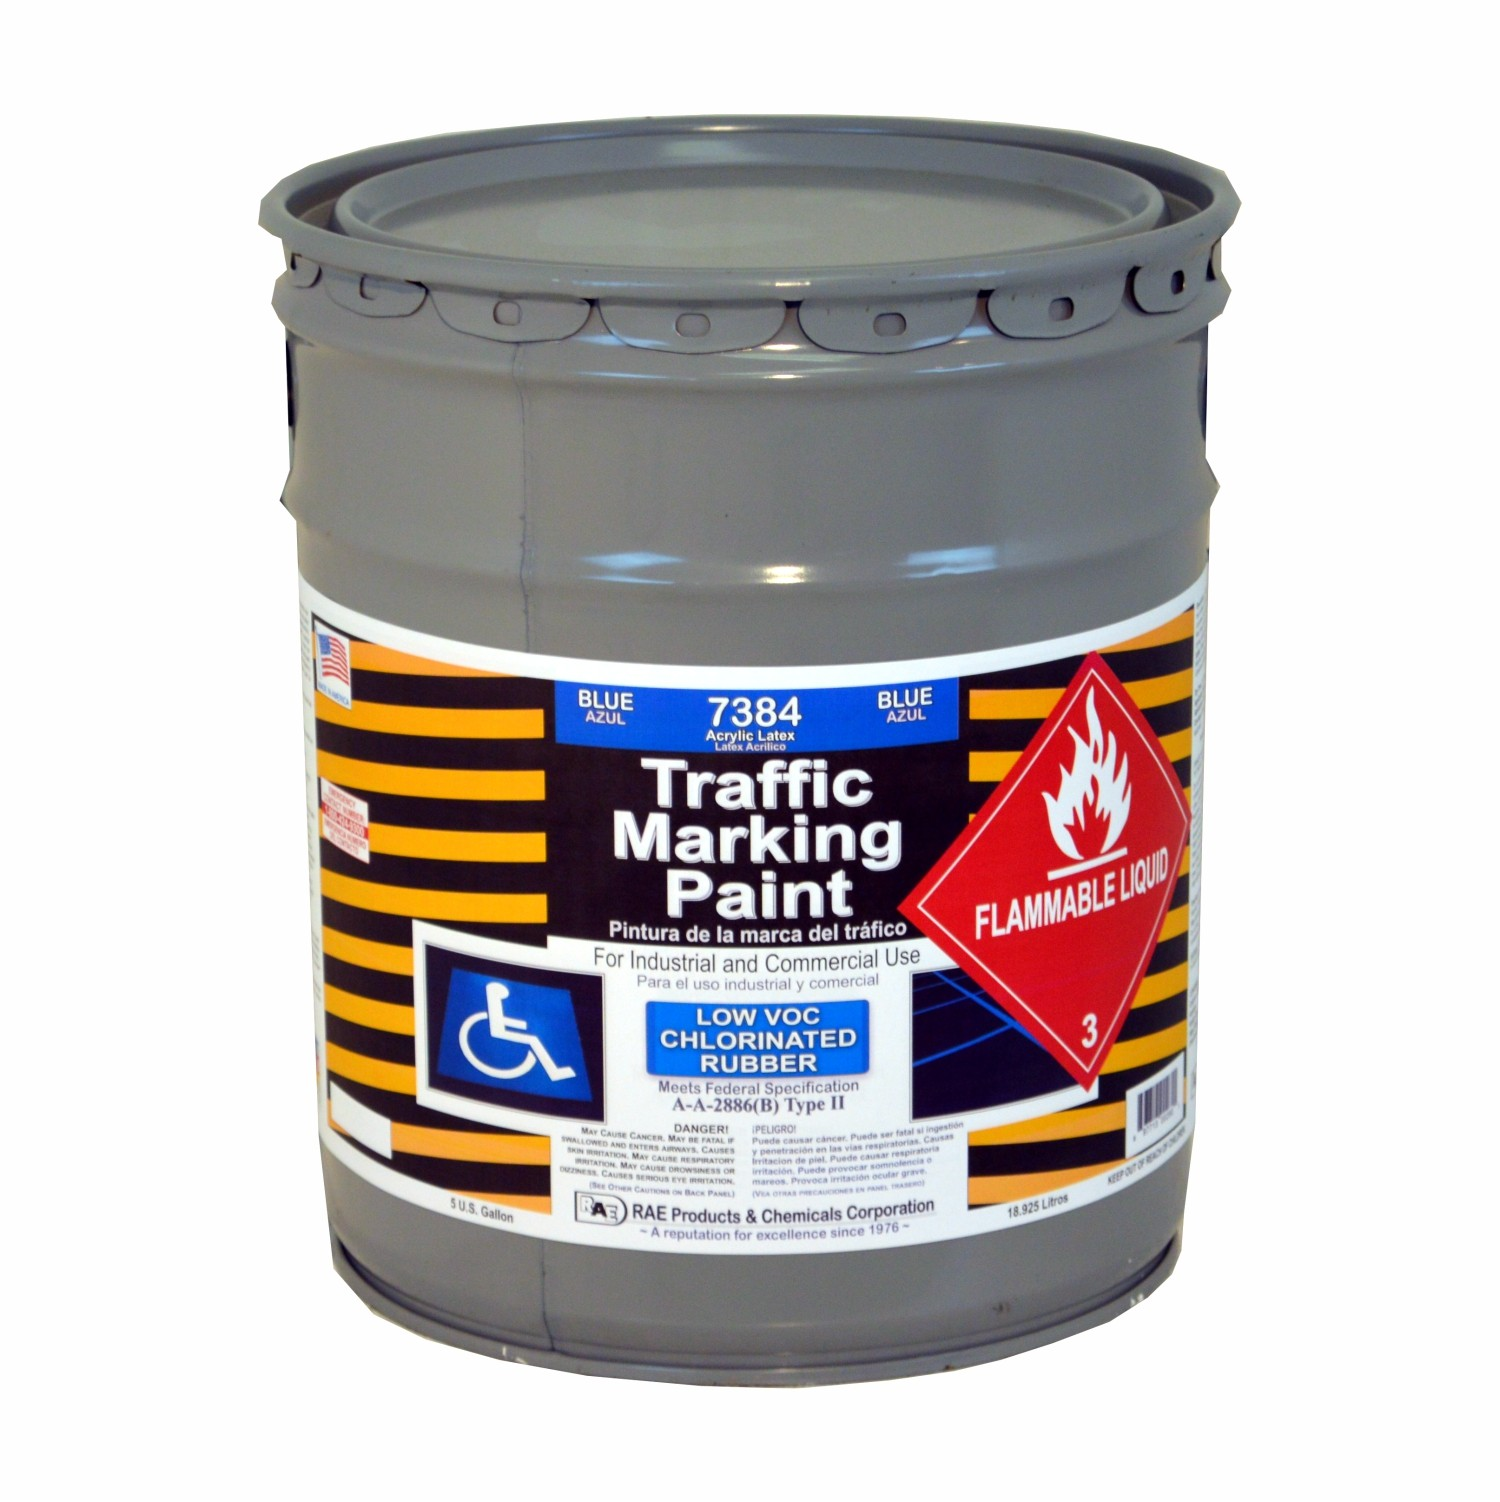 Blue 5 Gallon Chlorinated Rubber Low Voc Solvent